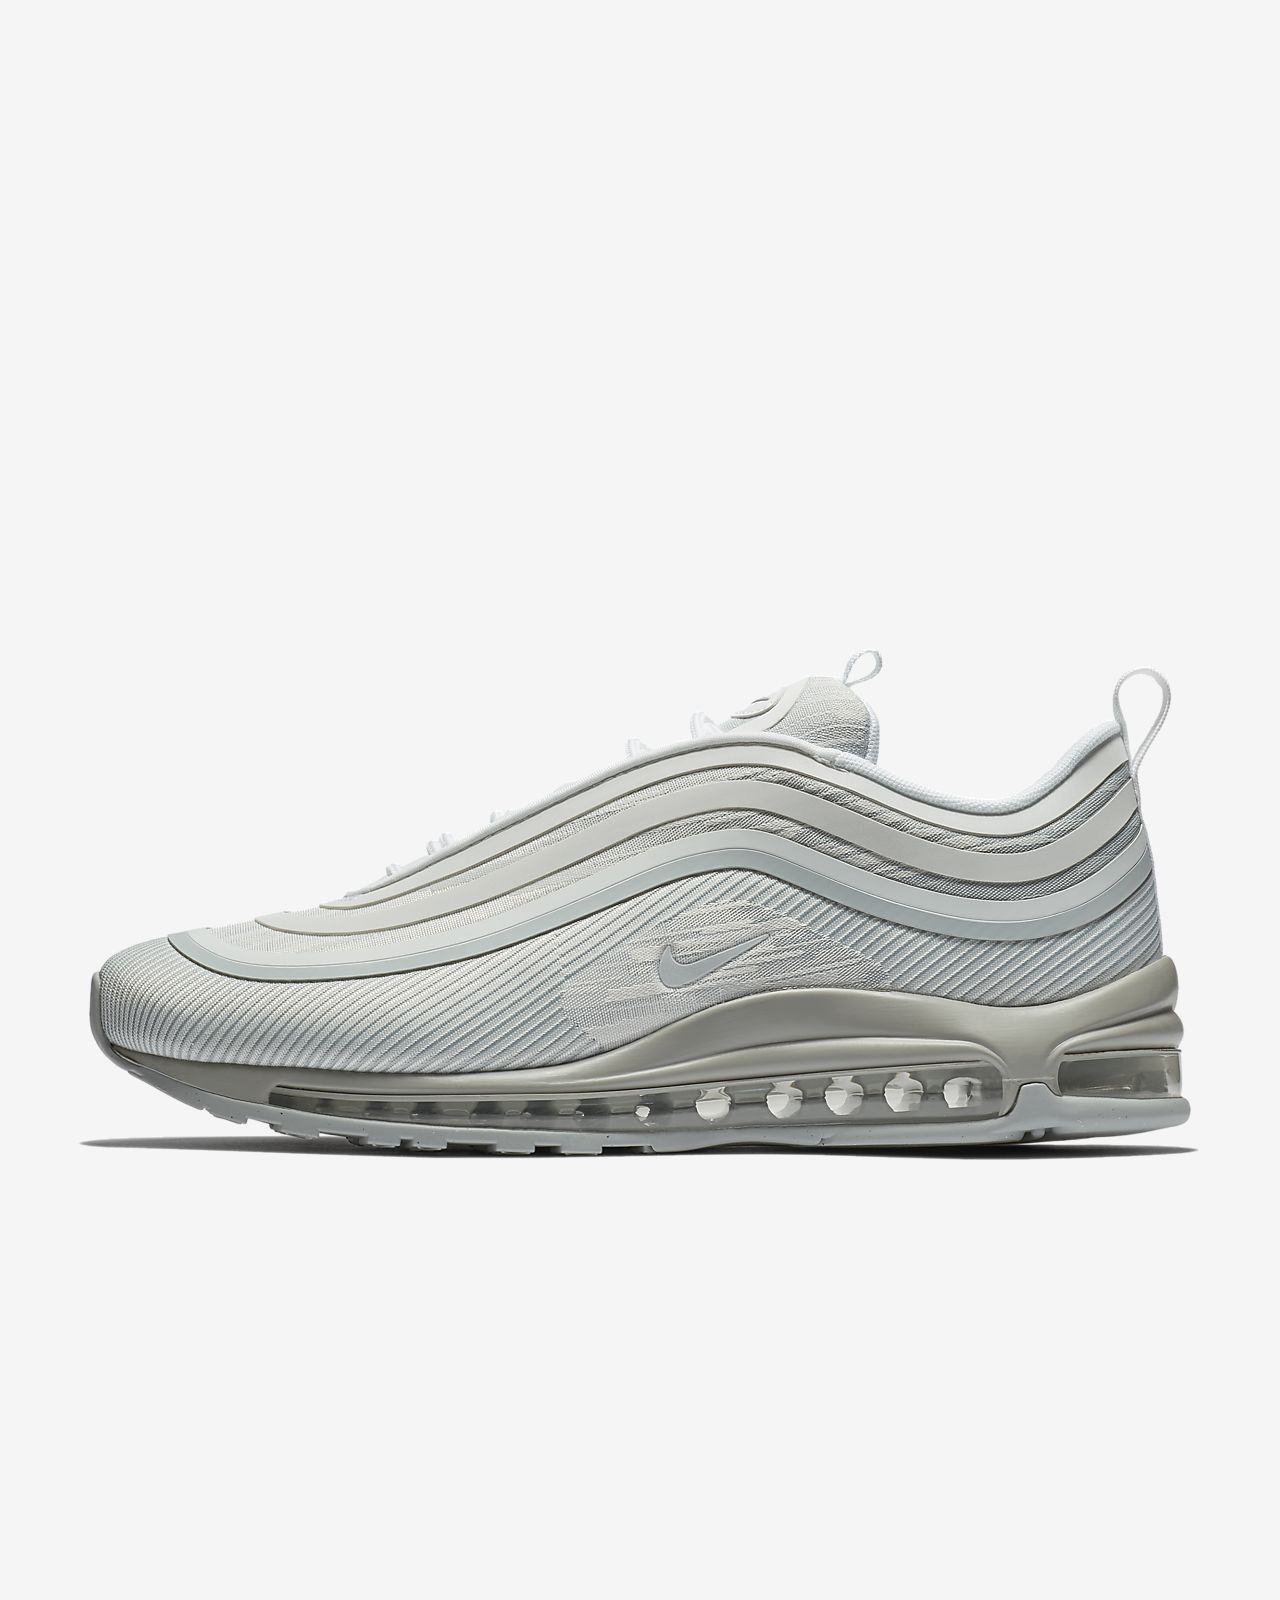 fa019f074f5 Nike Air Max 97 Ultra '17 Men's Shoe